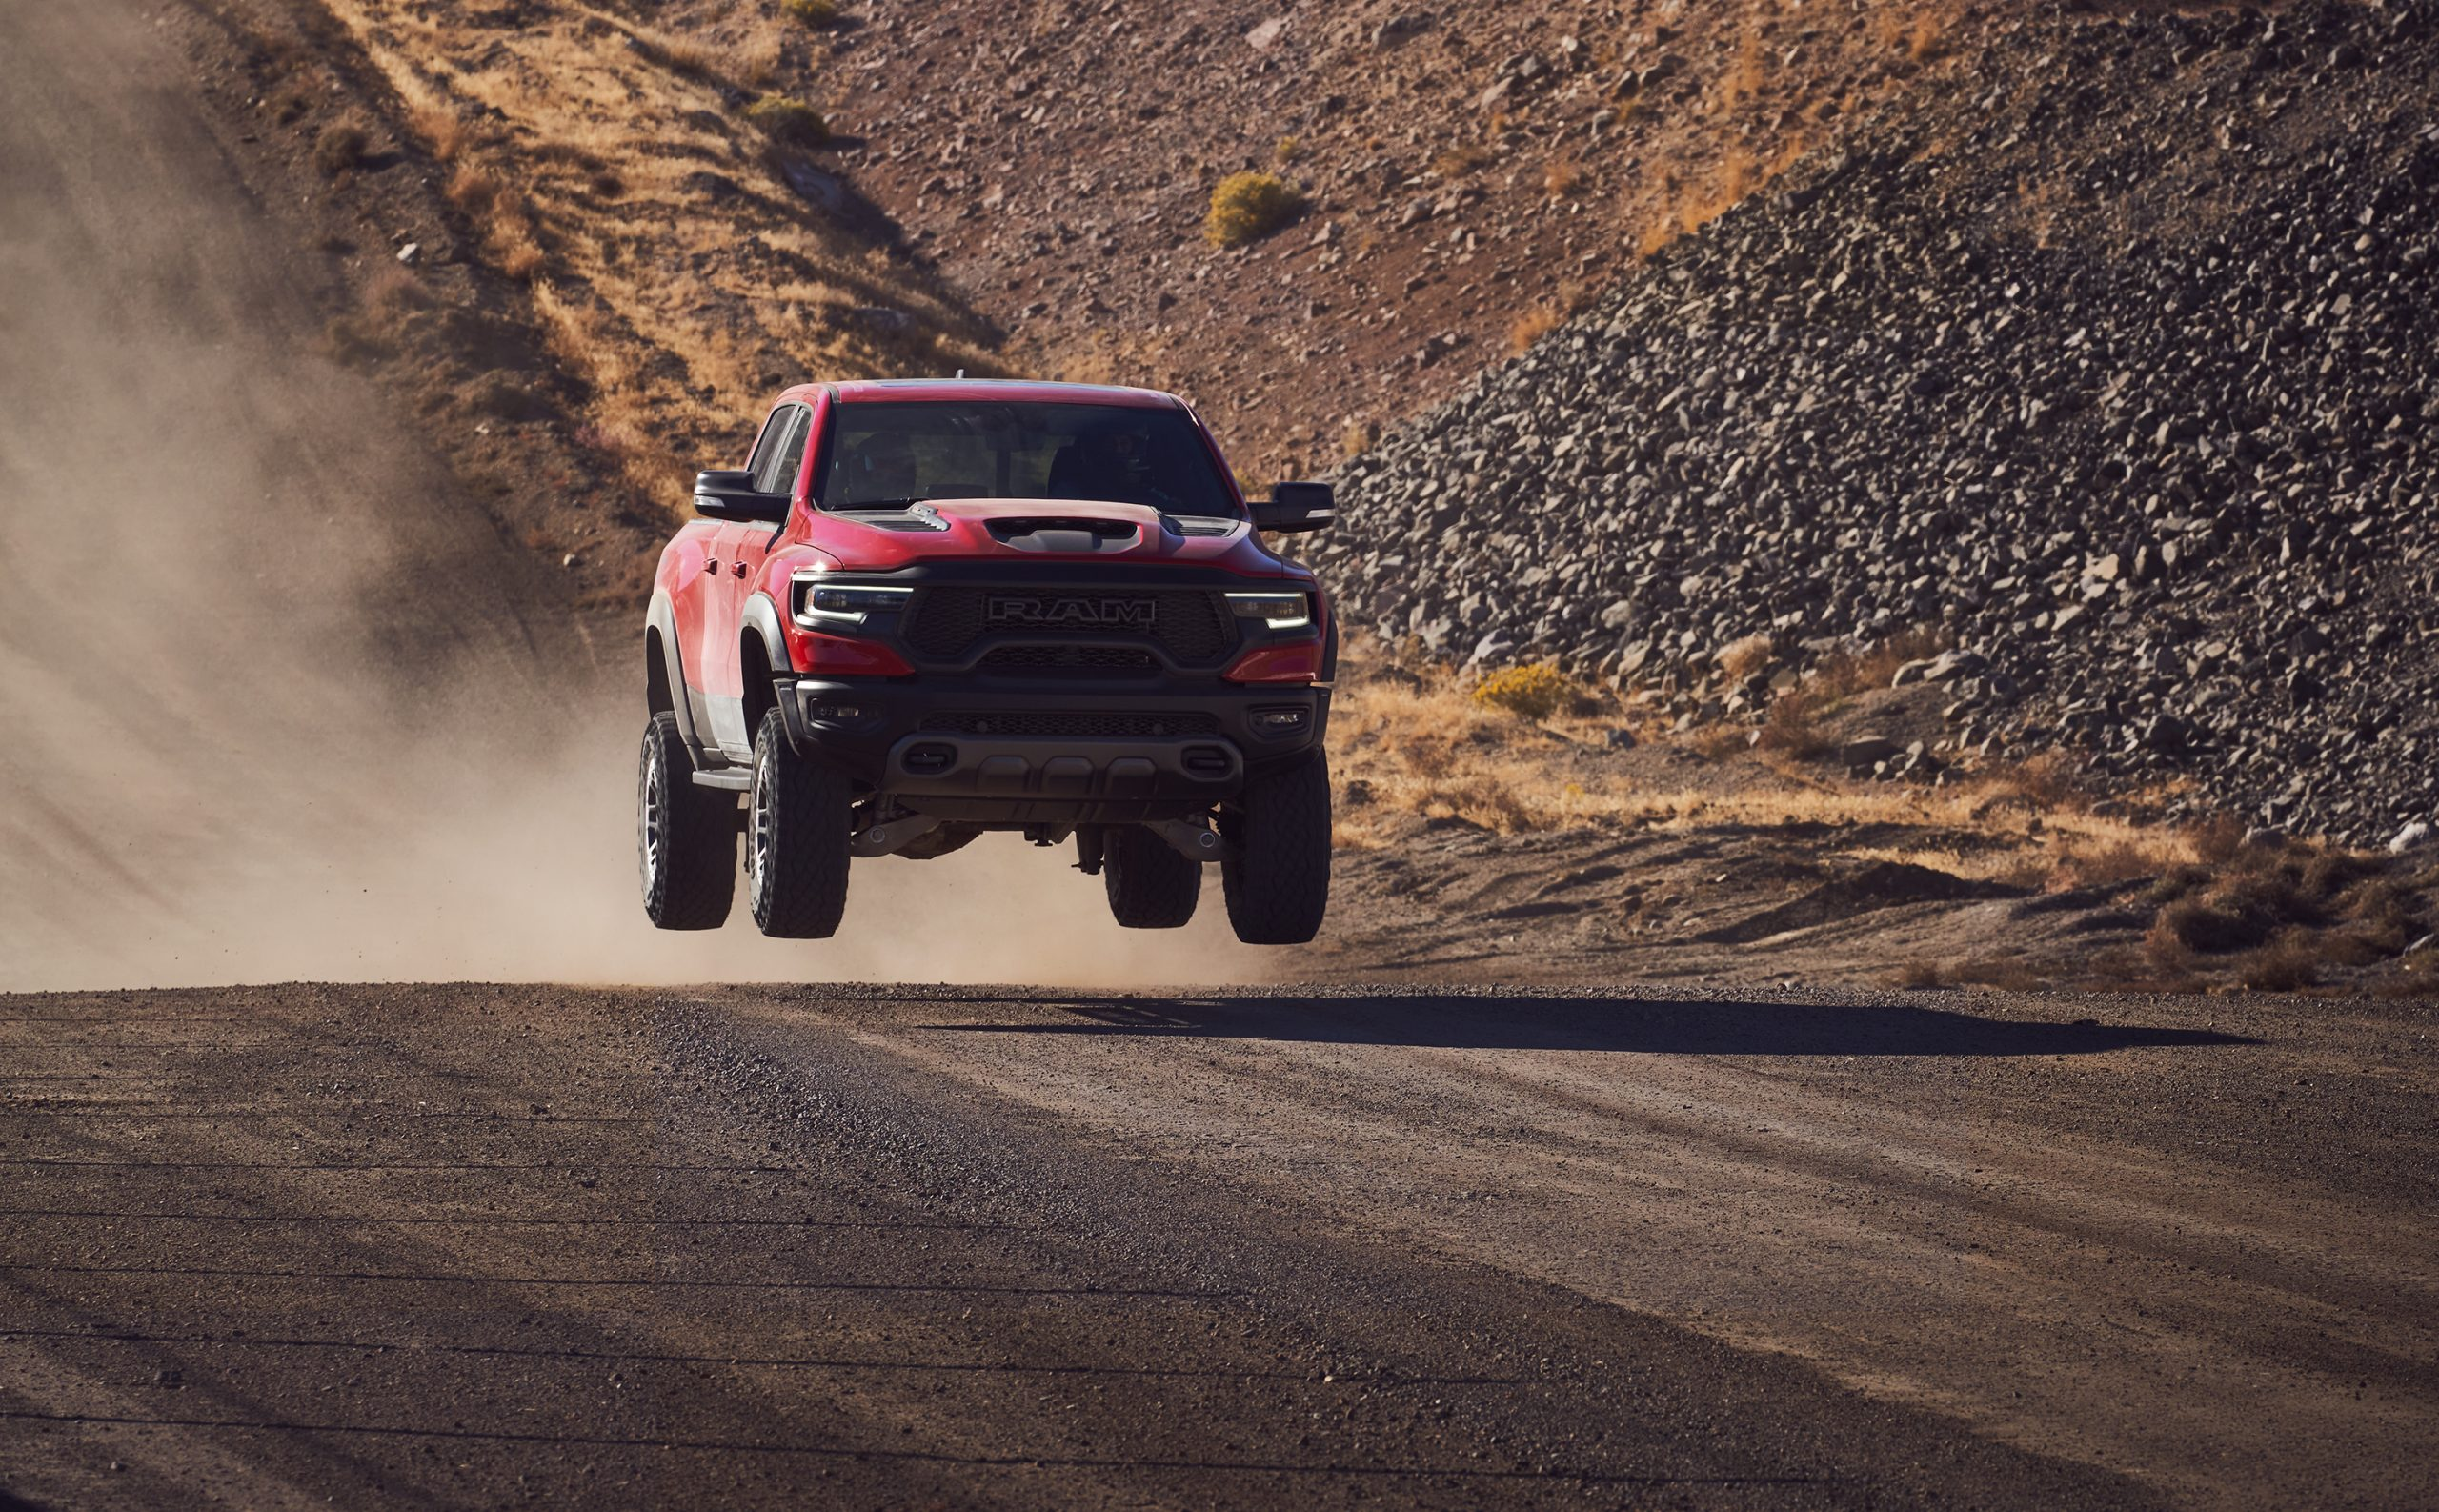 2021 Ram 1500 TRX front three-quarter dirt track dynamic action airborne red